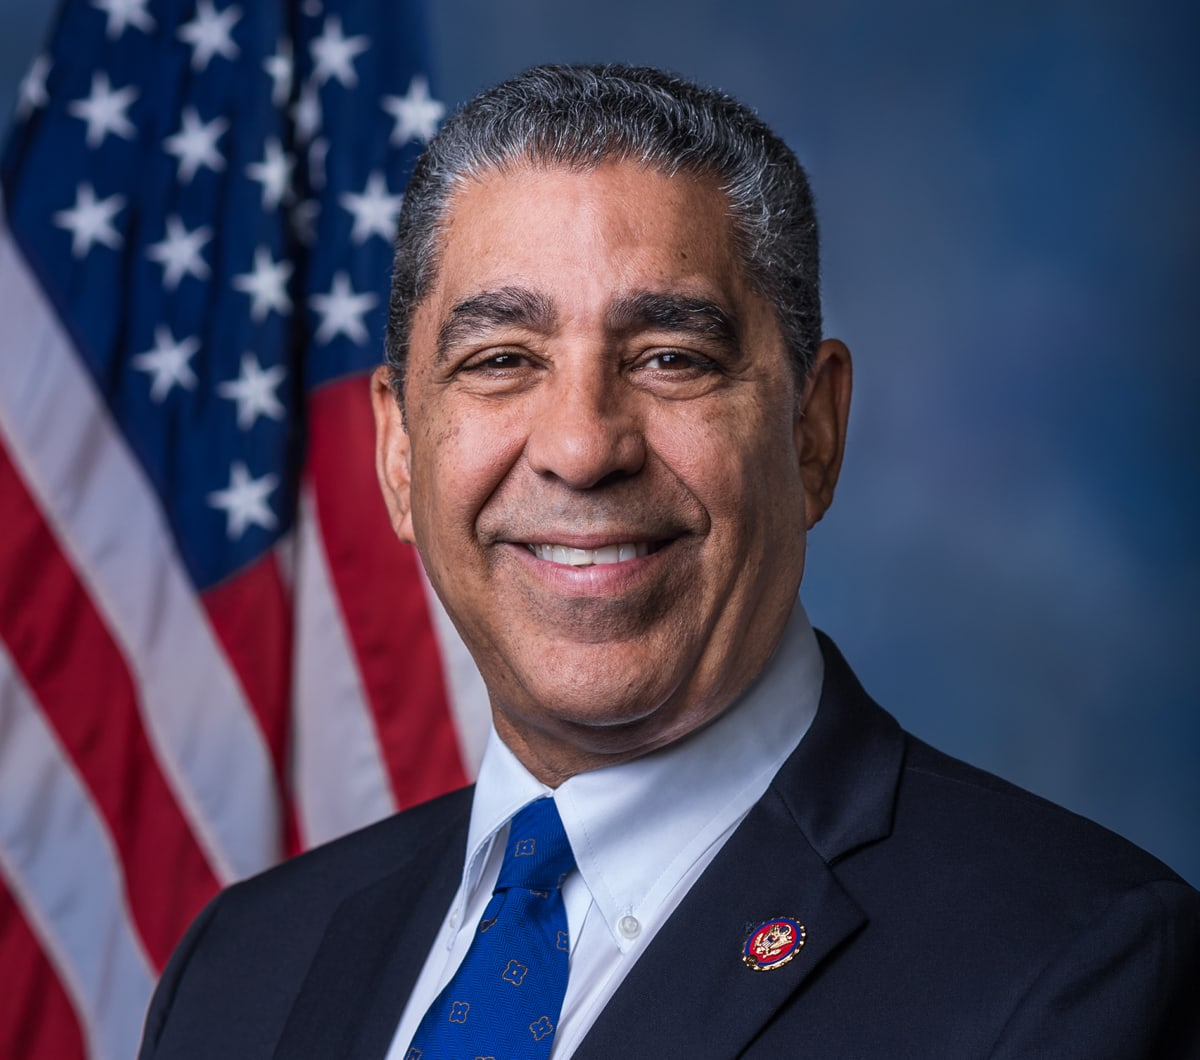 rep-adriano-espaillat-official-photo-116th-congress